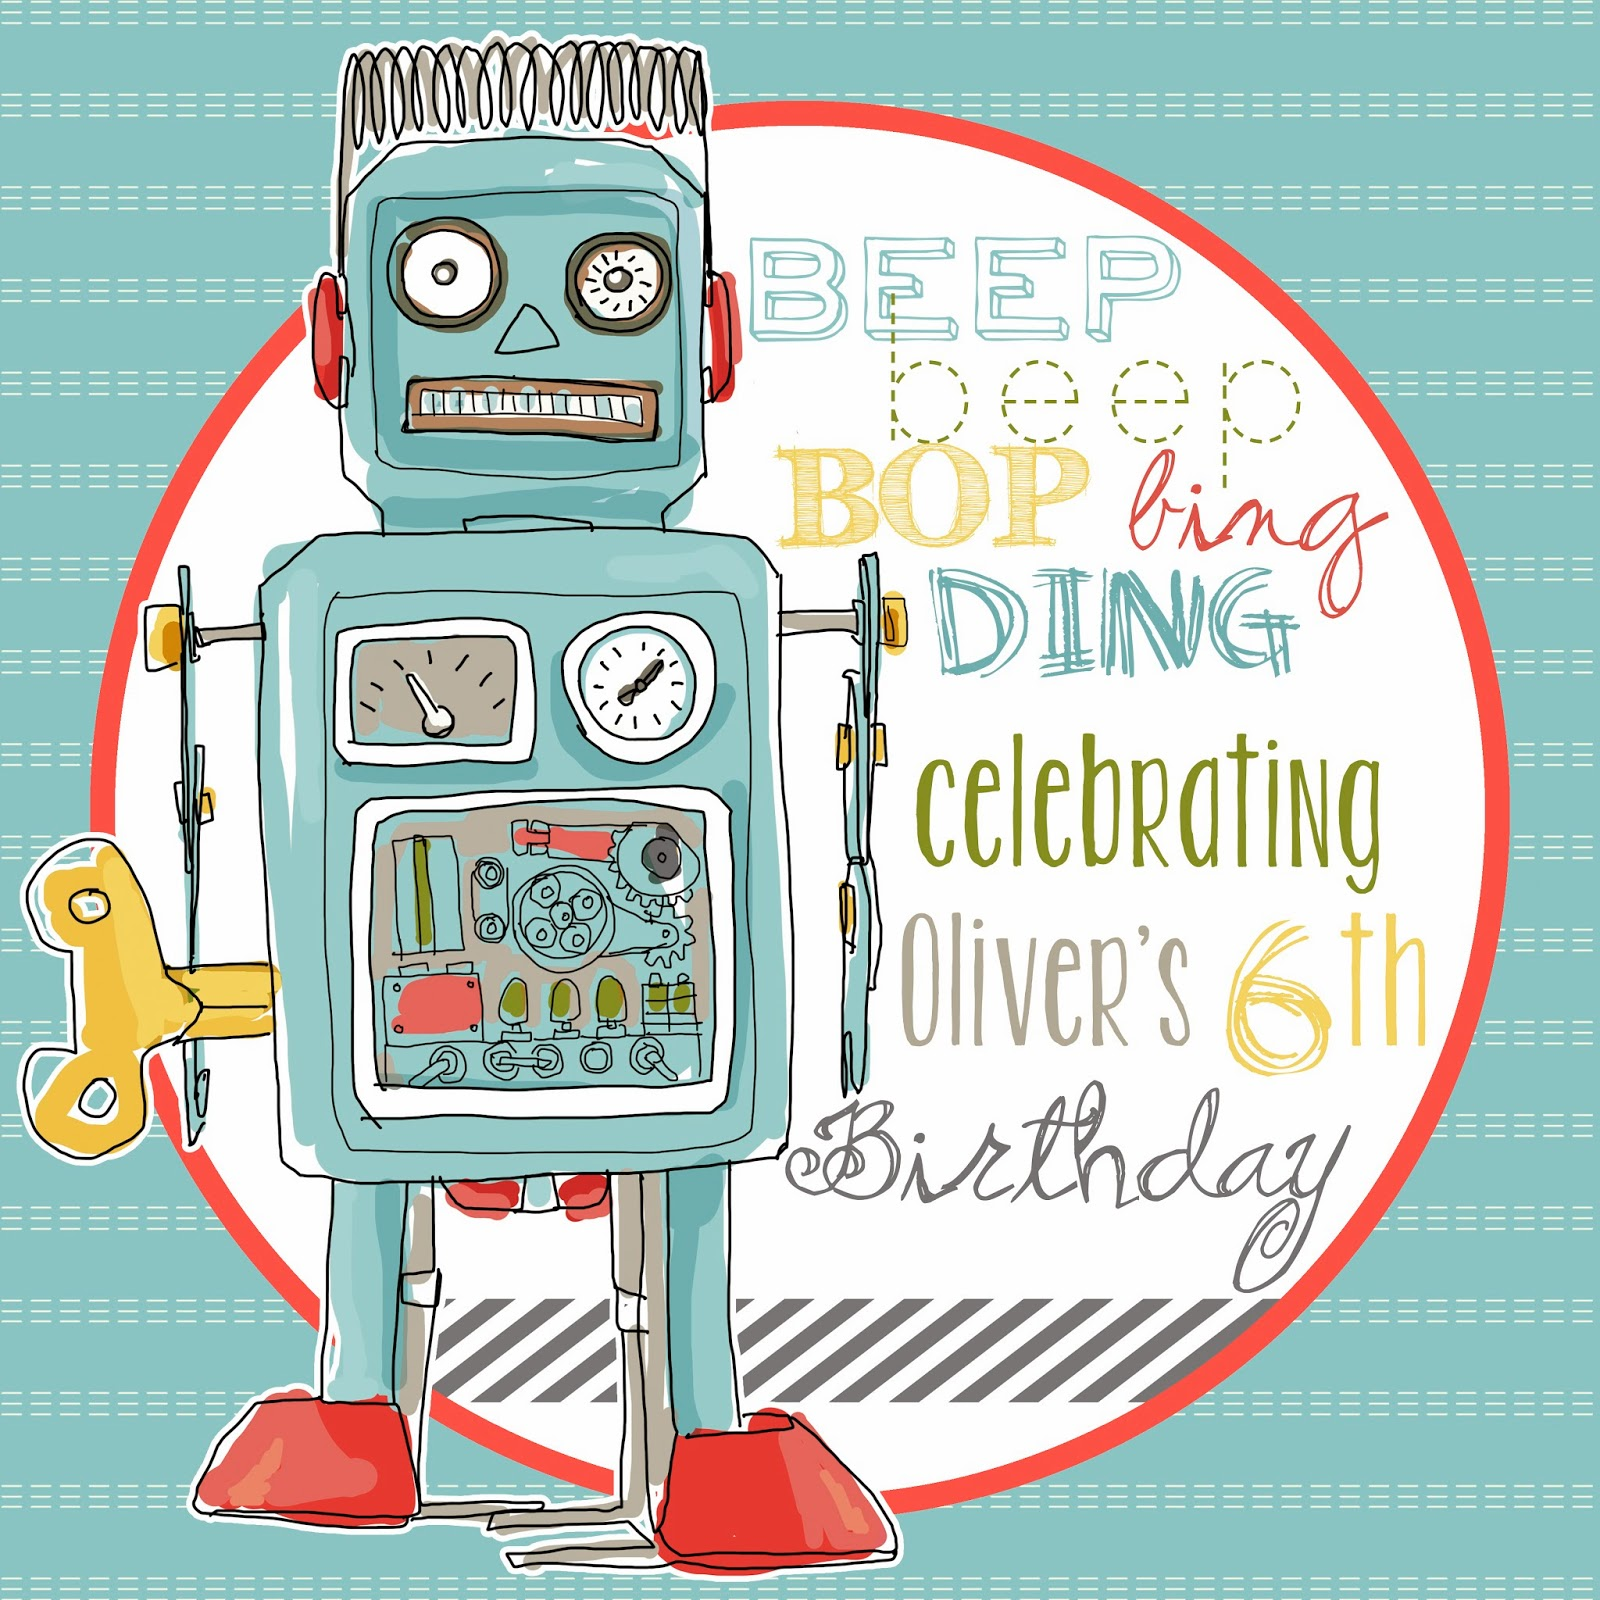 http://www.partyboxdesign.com/item_1405/Robot-Stickers.htm